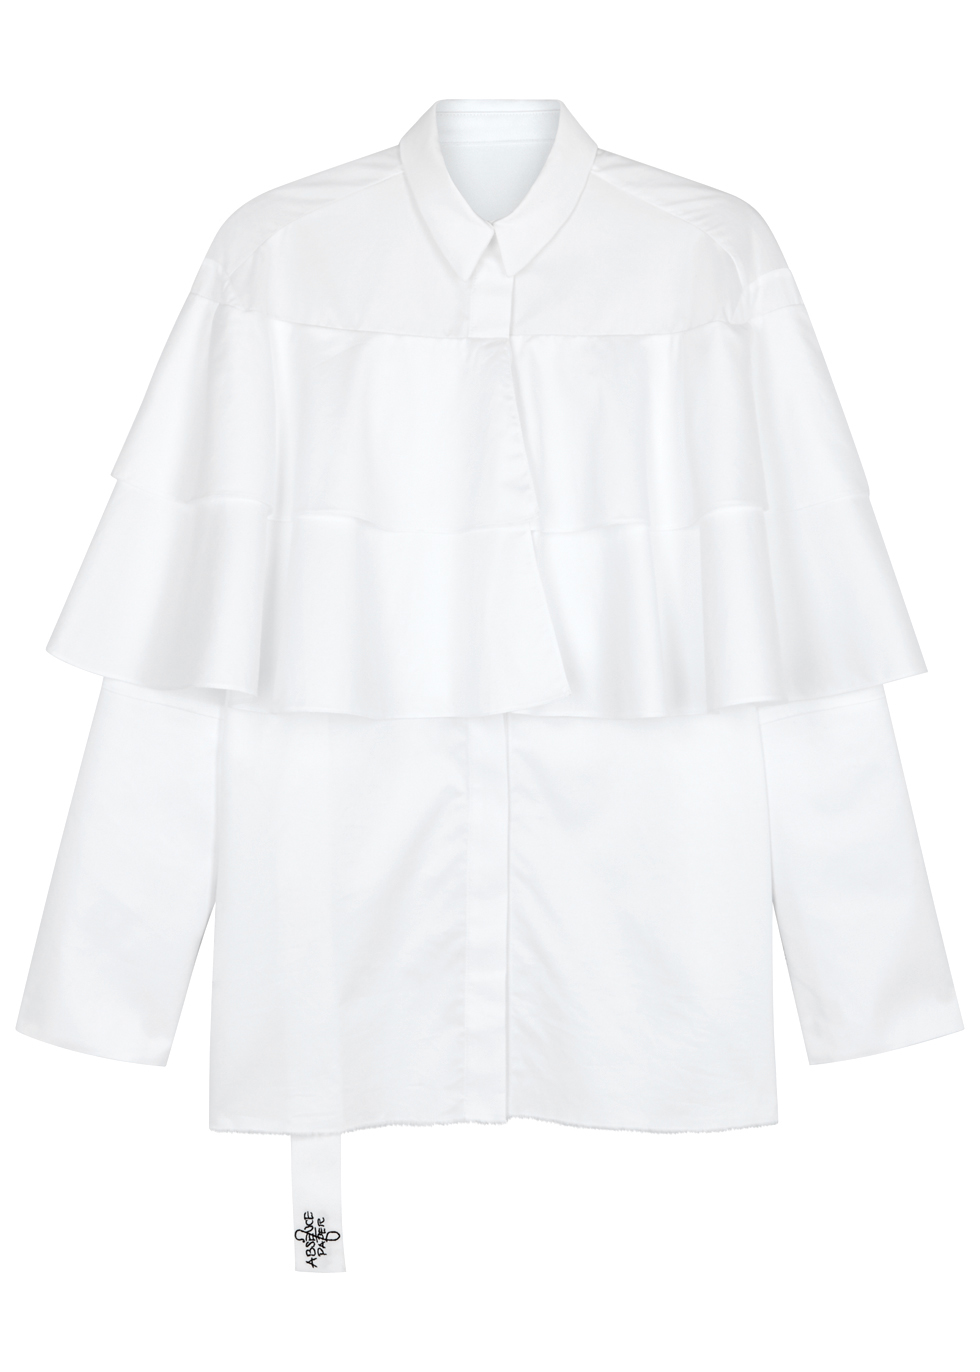 ABSENCE OF PAPER PAGE 5 POPPINS WHITE COTTON SHIRT